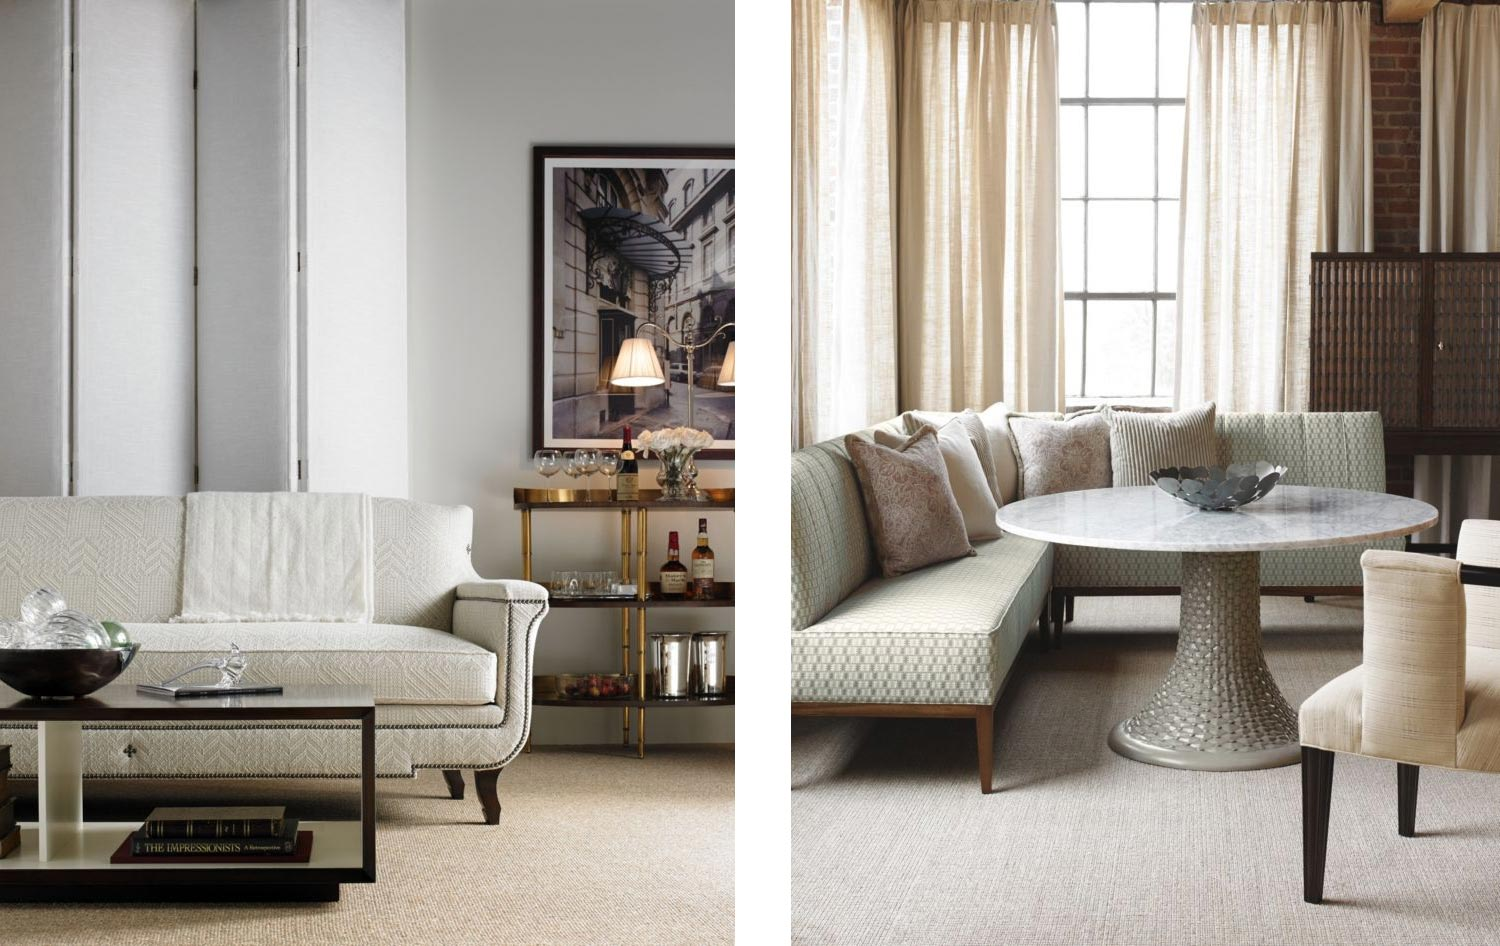 Furniture Collection for Hickory Chair @ Gomez Associates